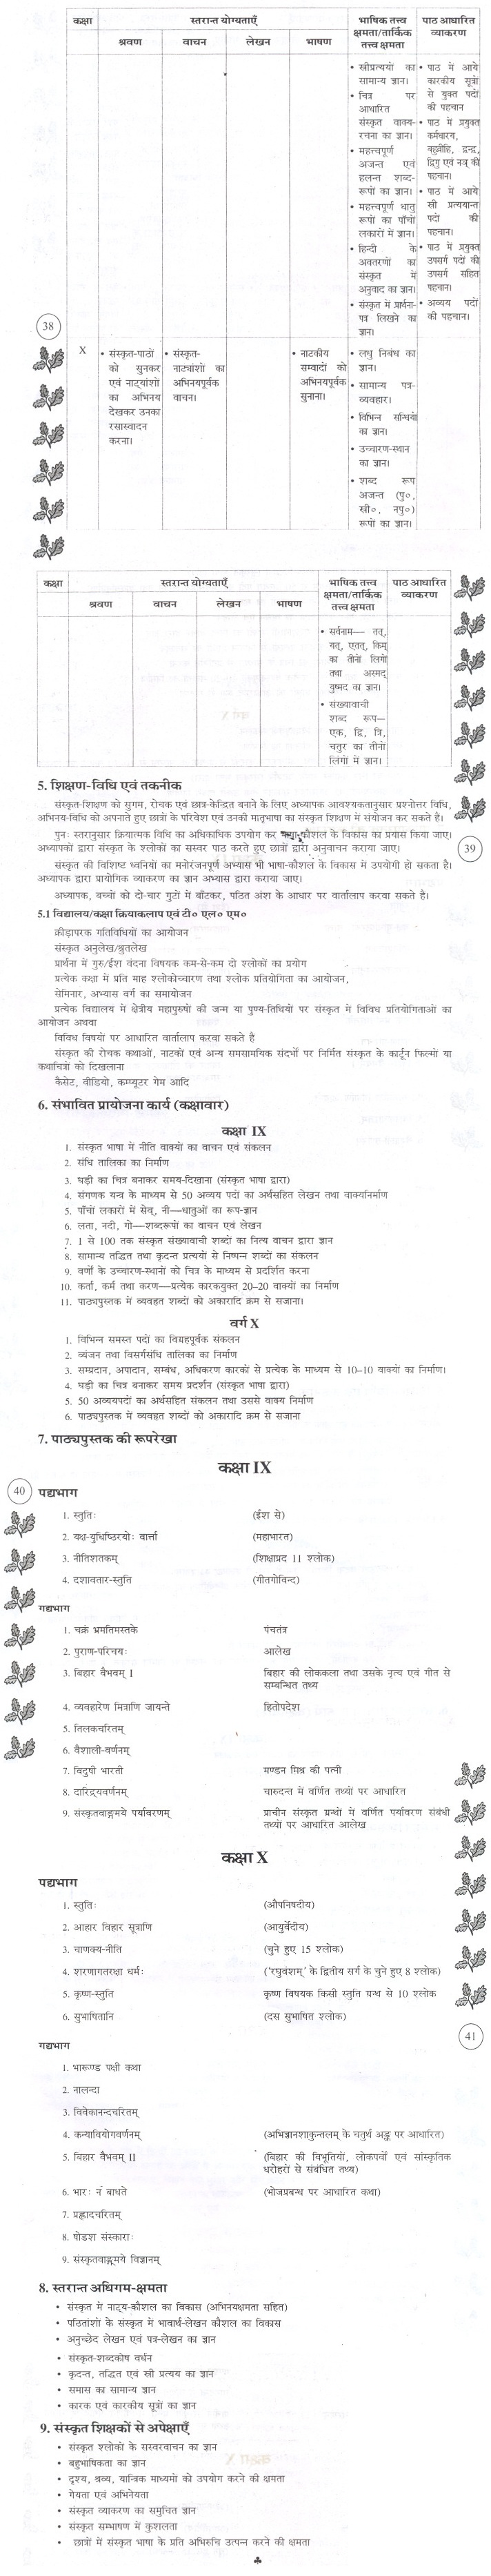 BSEB Syllabus For Class 9 10 Second Indian Language (Sanskrit) 2018-19 Bihar Board Syllabus PDF Download